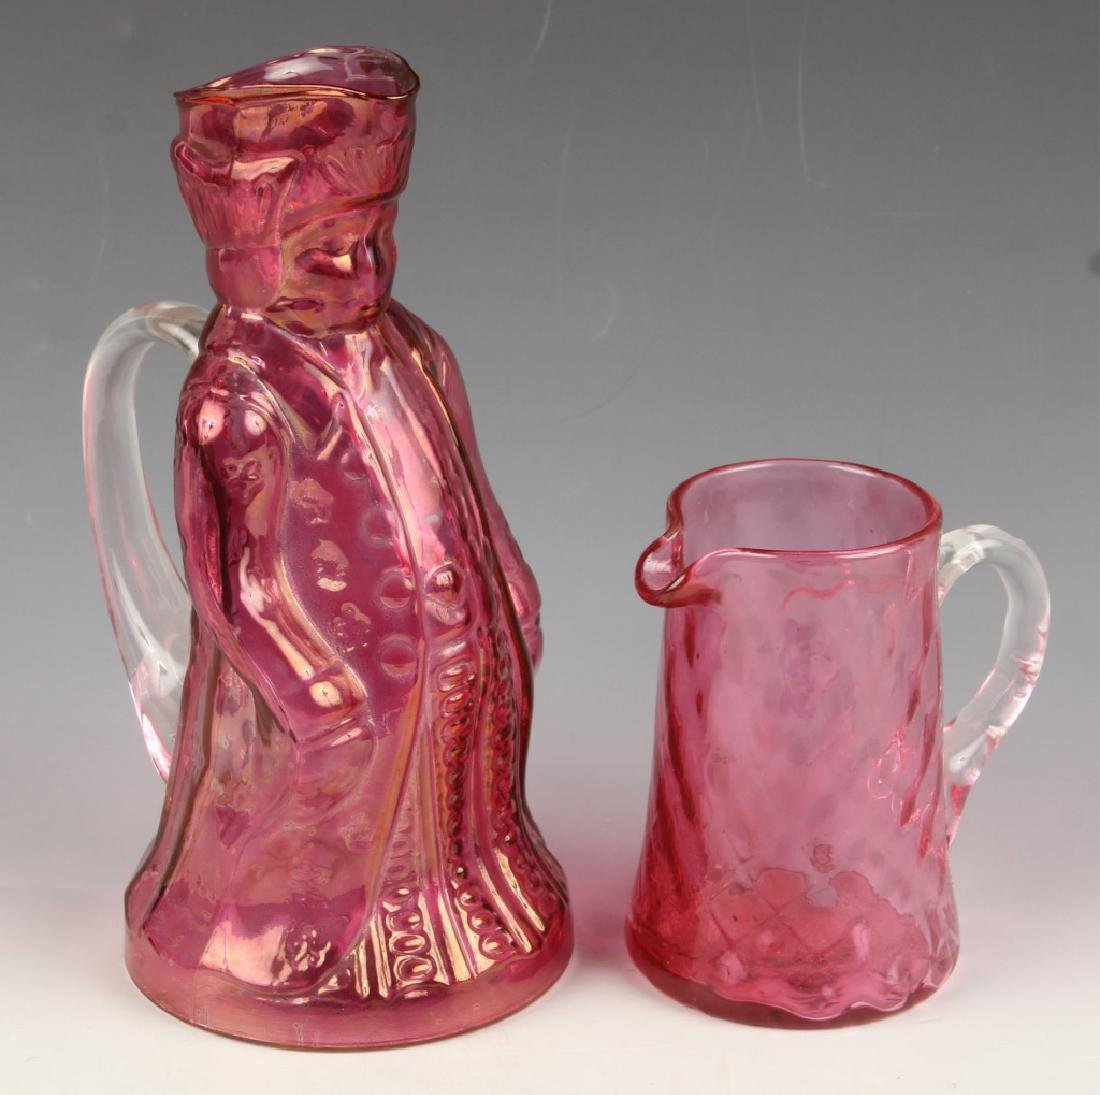 CRANBERRY GLASS TOBY FIGURAL PITCHER PILGRIM CREAM